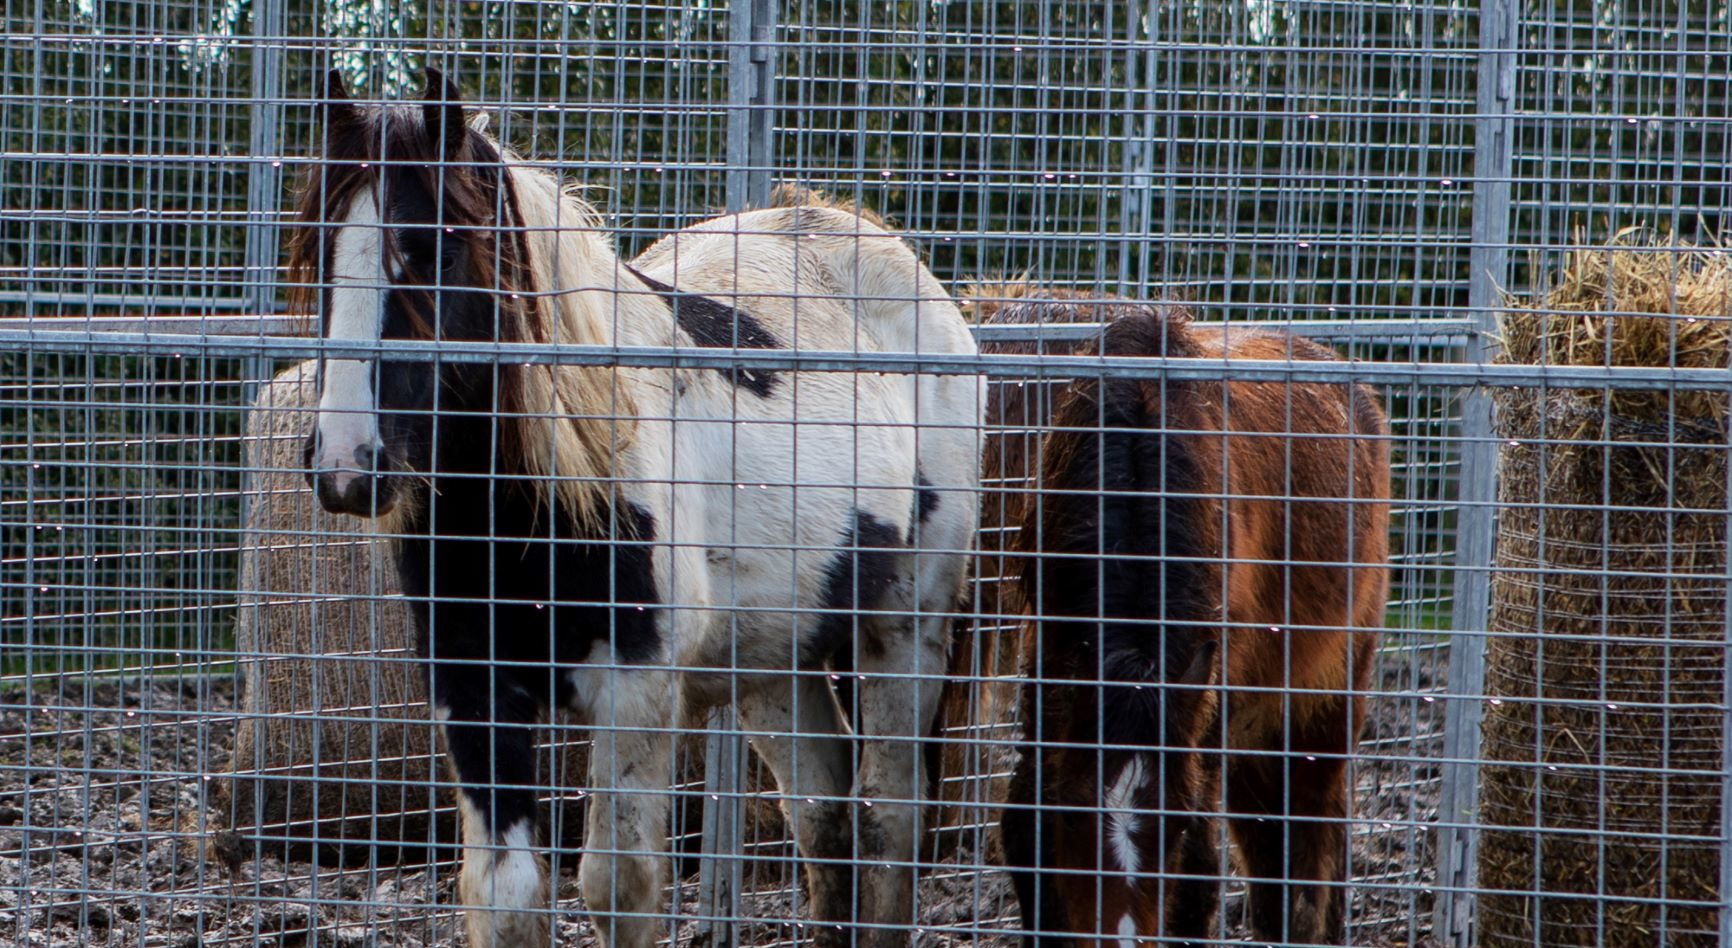 Teamwork enables charities to help over 70 horses on one site